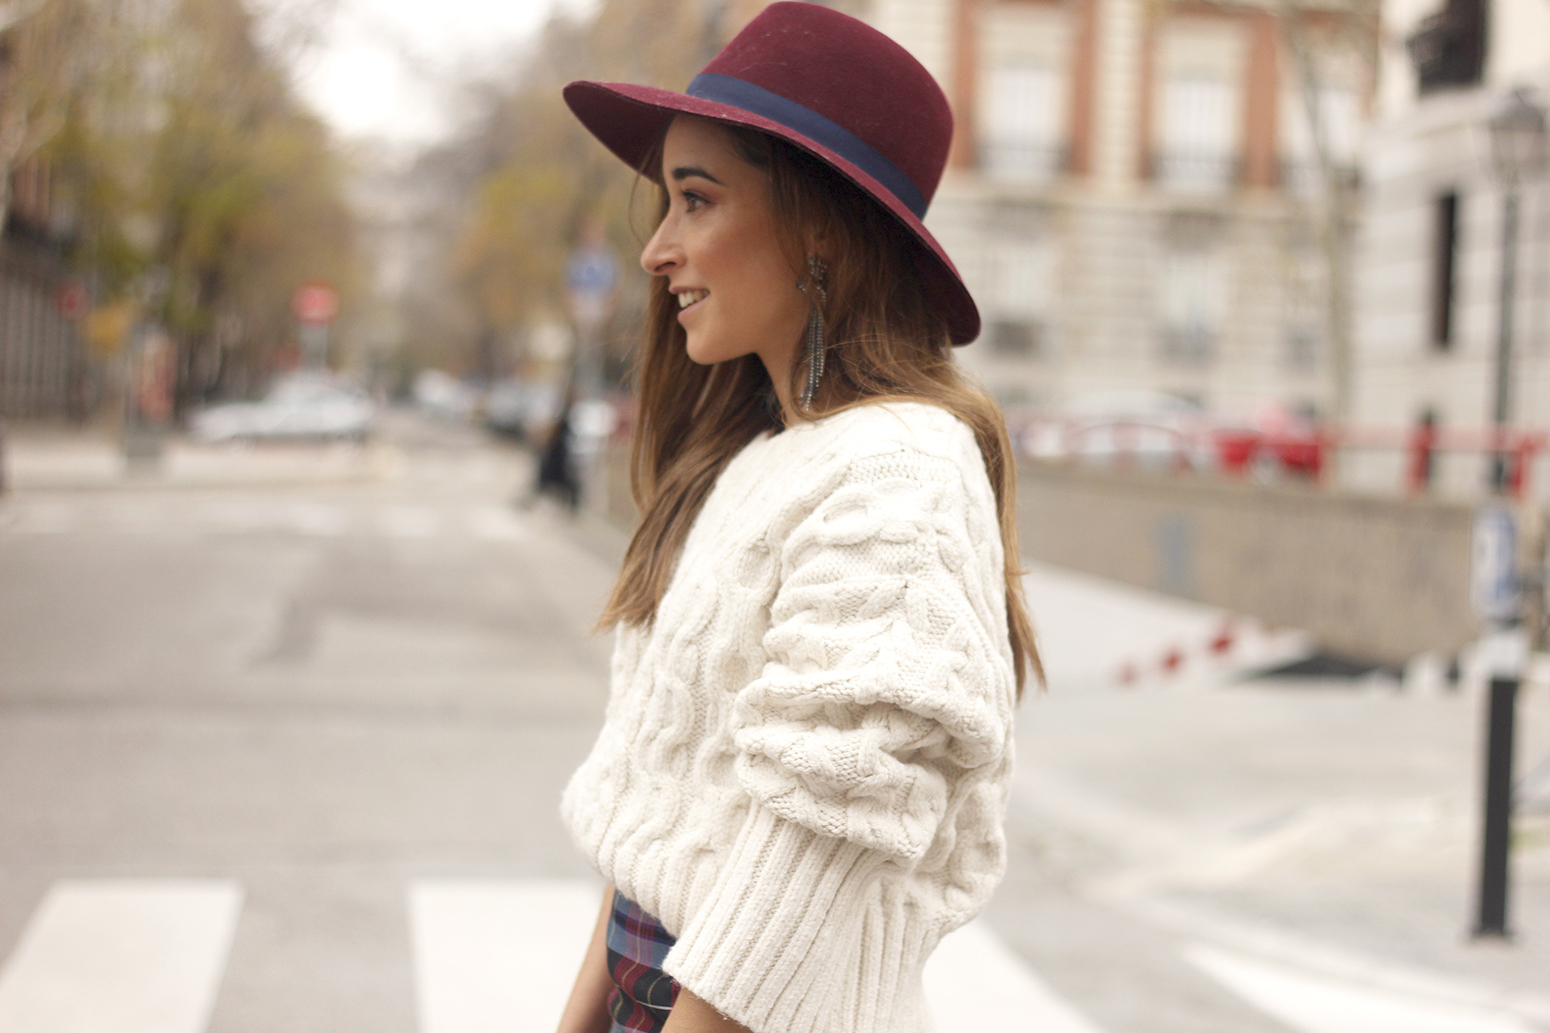 e68ee12cd1 plaid pants zara white sweater burgundy hat street style outfit 20189408